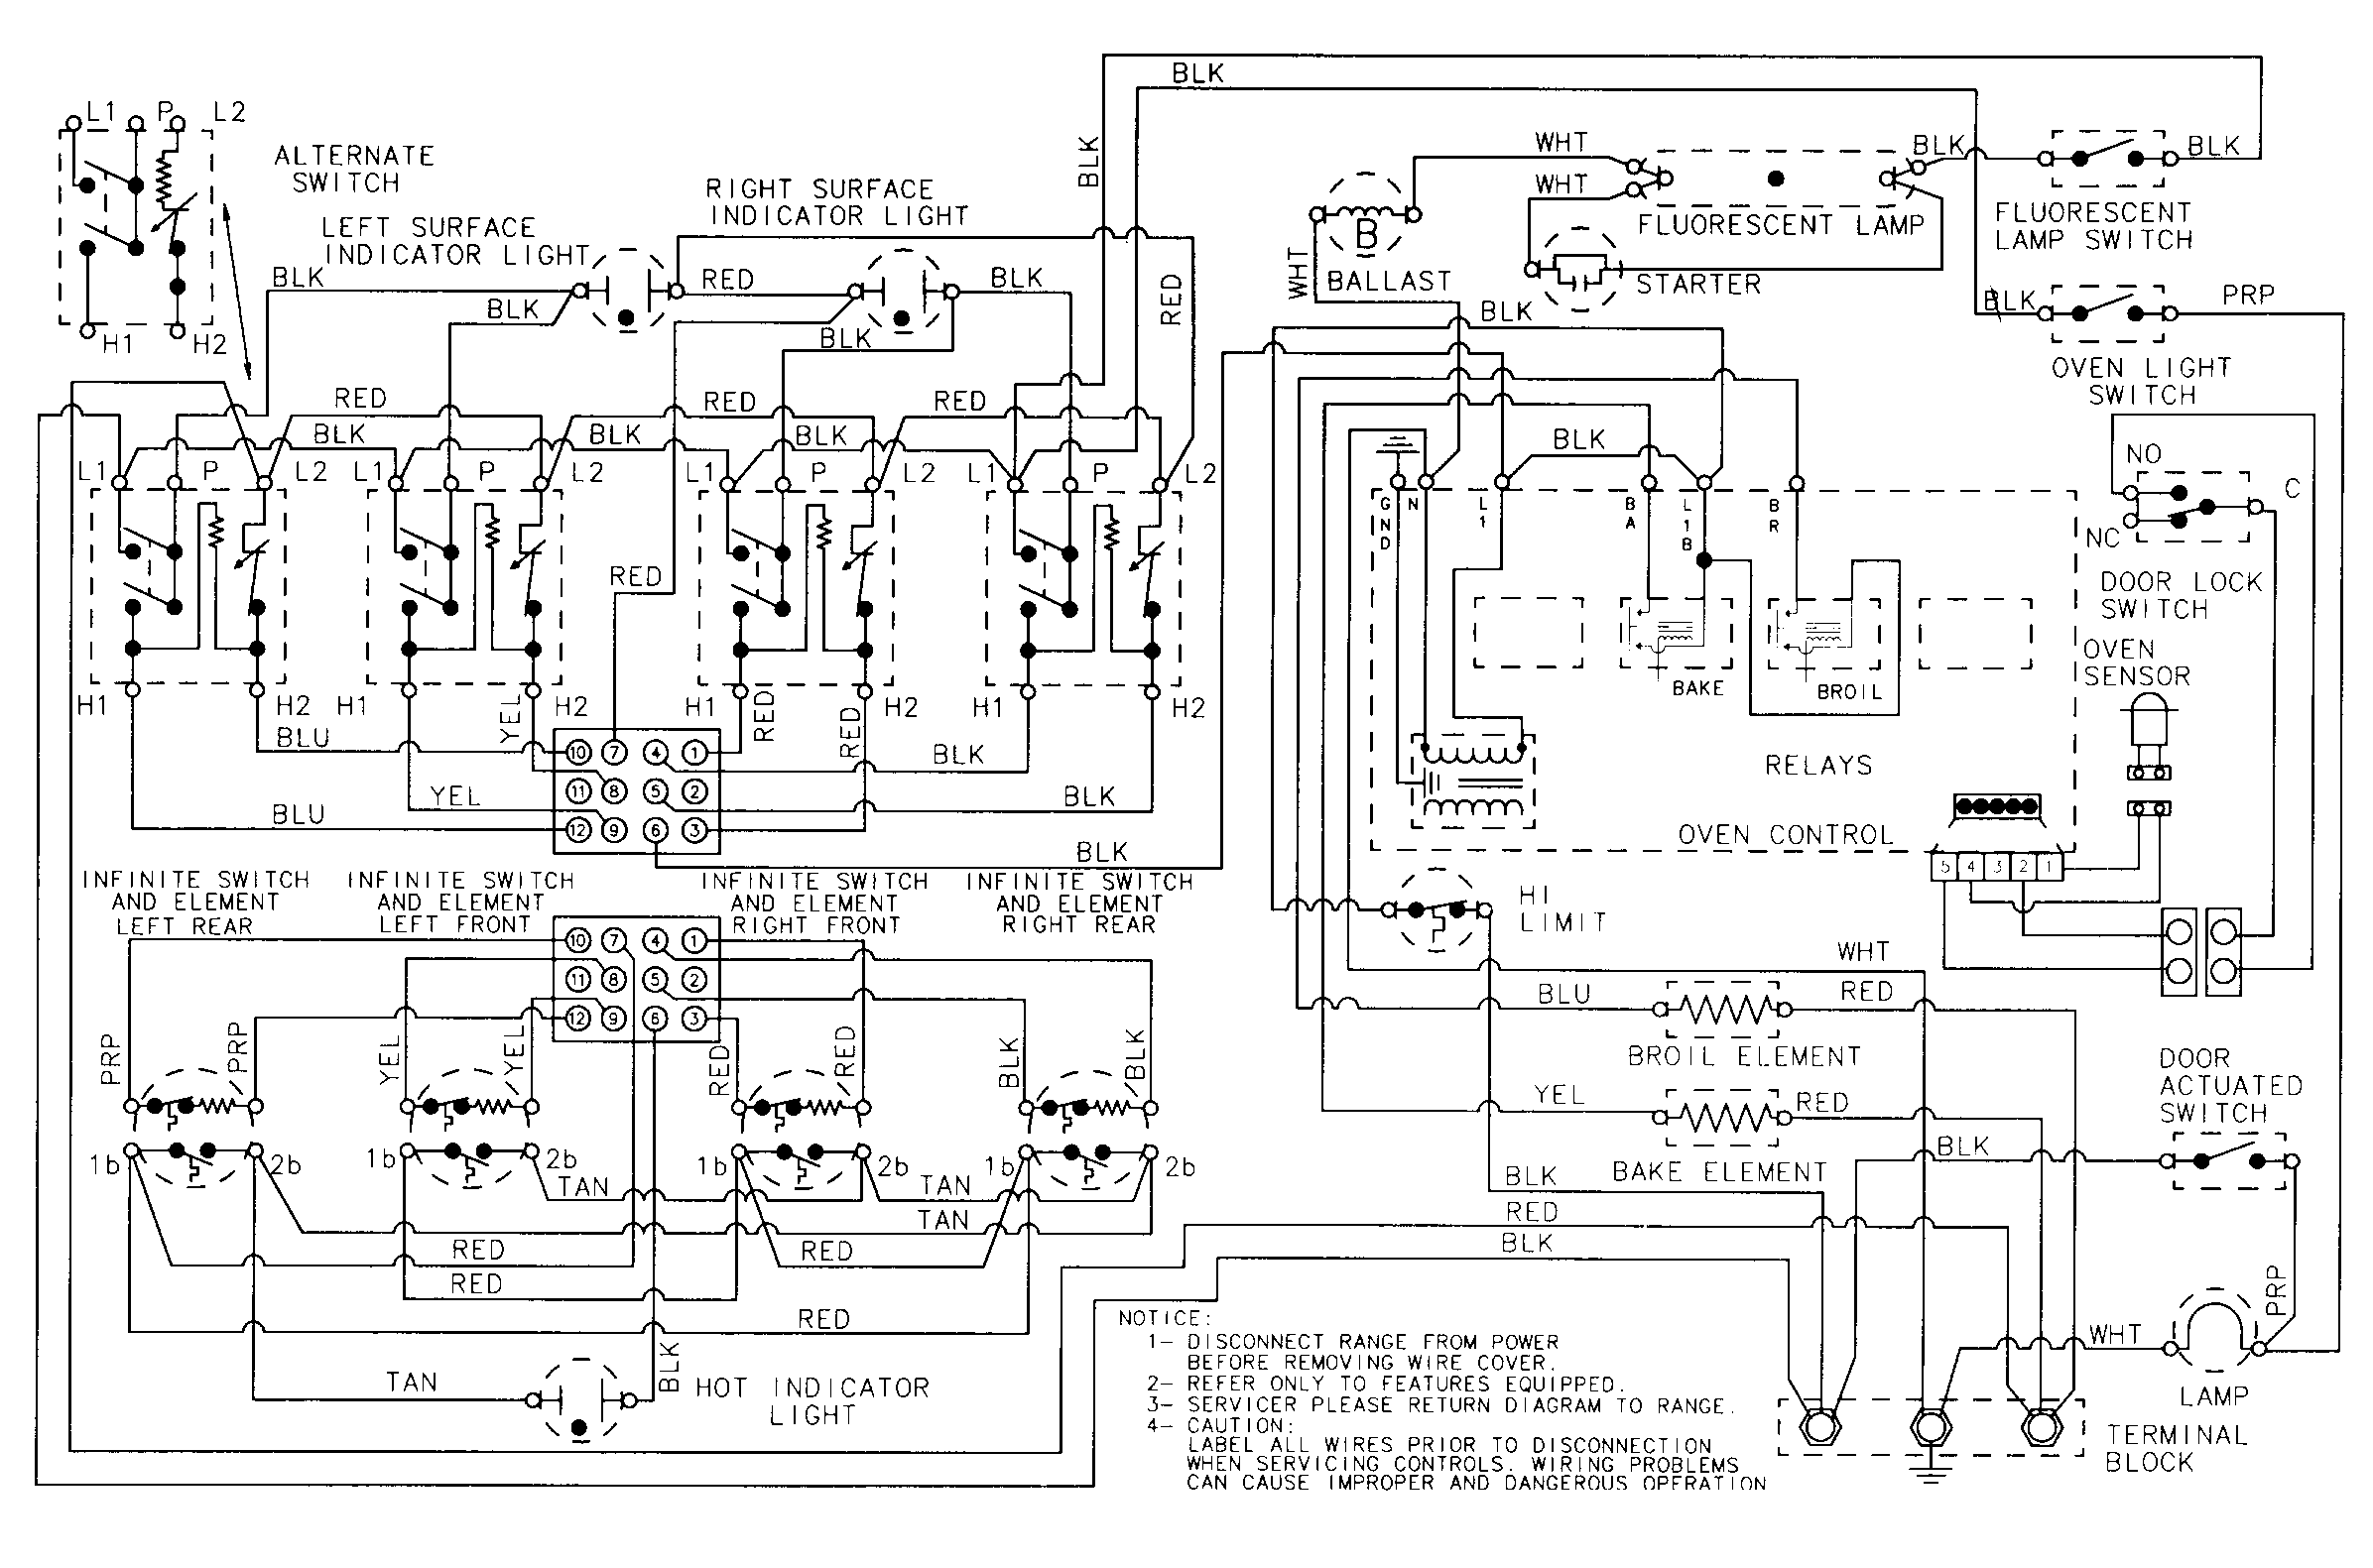 York Wiring Diagrams: York Wiring Diagrams  York  Free Printable Wiring Diagrams Database,